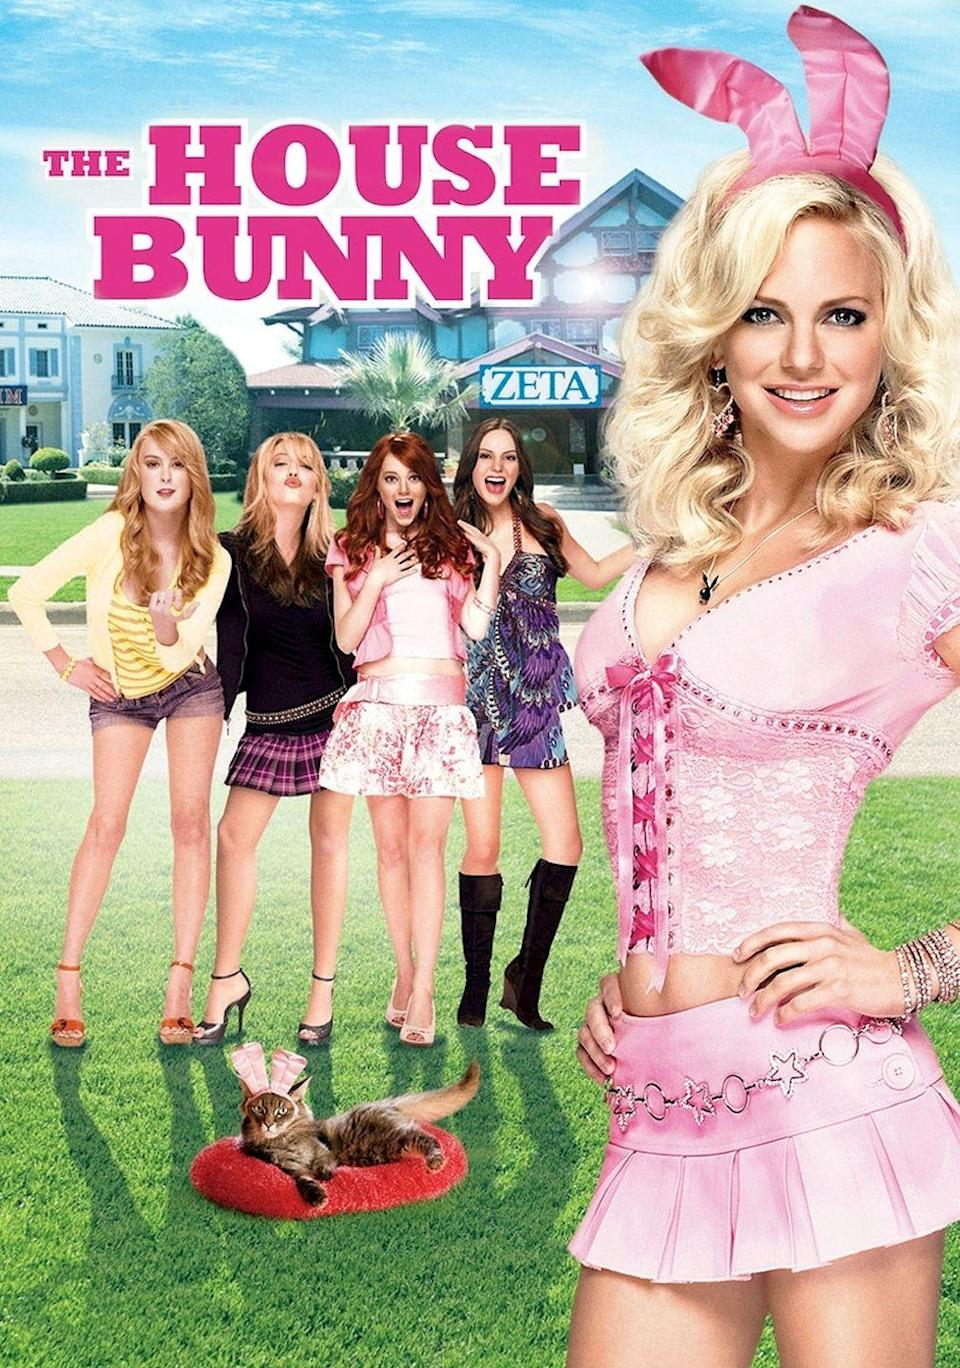 """<p>After turning 27 years old, a Playboy Bunny (<strong>Anna Faris</strong>) gets kicked out of Hugh Hefner's mansion. Her last resort is joining a sorority and becoming a house mother, helping the sisters get boys. Naturally, all sorts of hilarious fun and chaos erupts as a result.</p><p><a class=""""link rapid-noclick-resp"""" href=""""https://www.amazon.com/House-Bunny-Anna-Faris/dp/B001NZHJGO/ref=sr_1_2?dchild=1&keywords=THE+HOUSE+BUNNY&qid=1596922922&sr=8-2&tag=syn-yahoo-20&ascsubtag=%5Bartid%7C10055.g.33513354%5Bsrc%7Cyahoo-us"""" rel=""""nofollow noopener"""" target=""""_blank"""" data-ylk=""""slk:WATCH NOW"""">WATCH NOW</a></p>"""